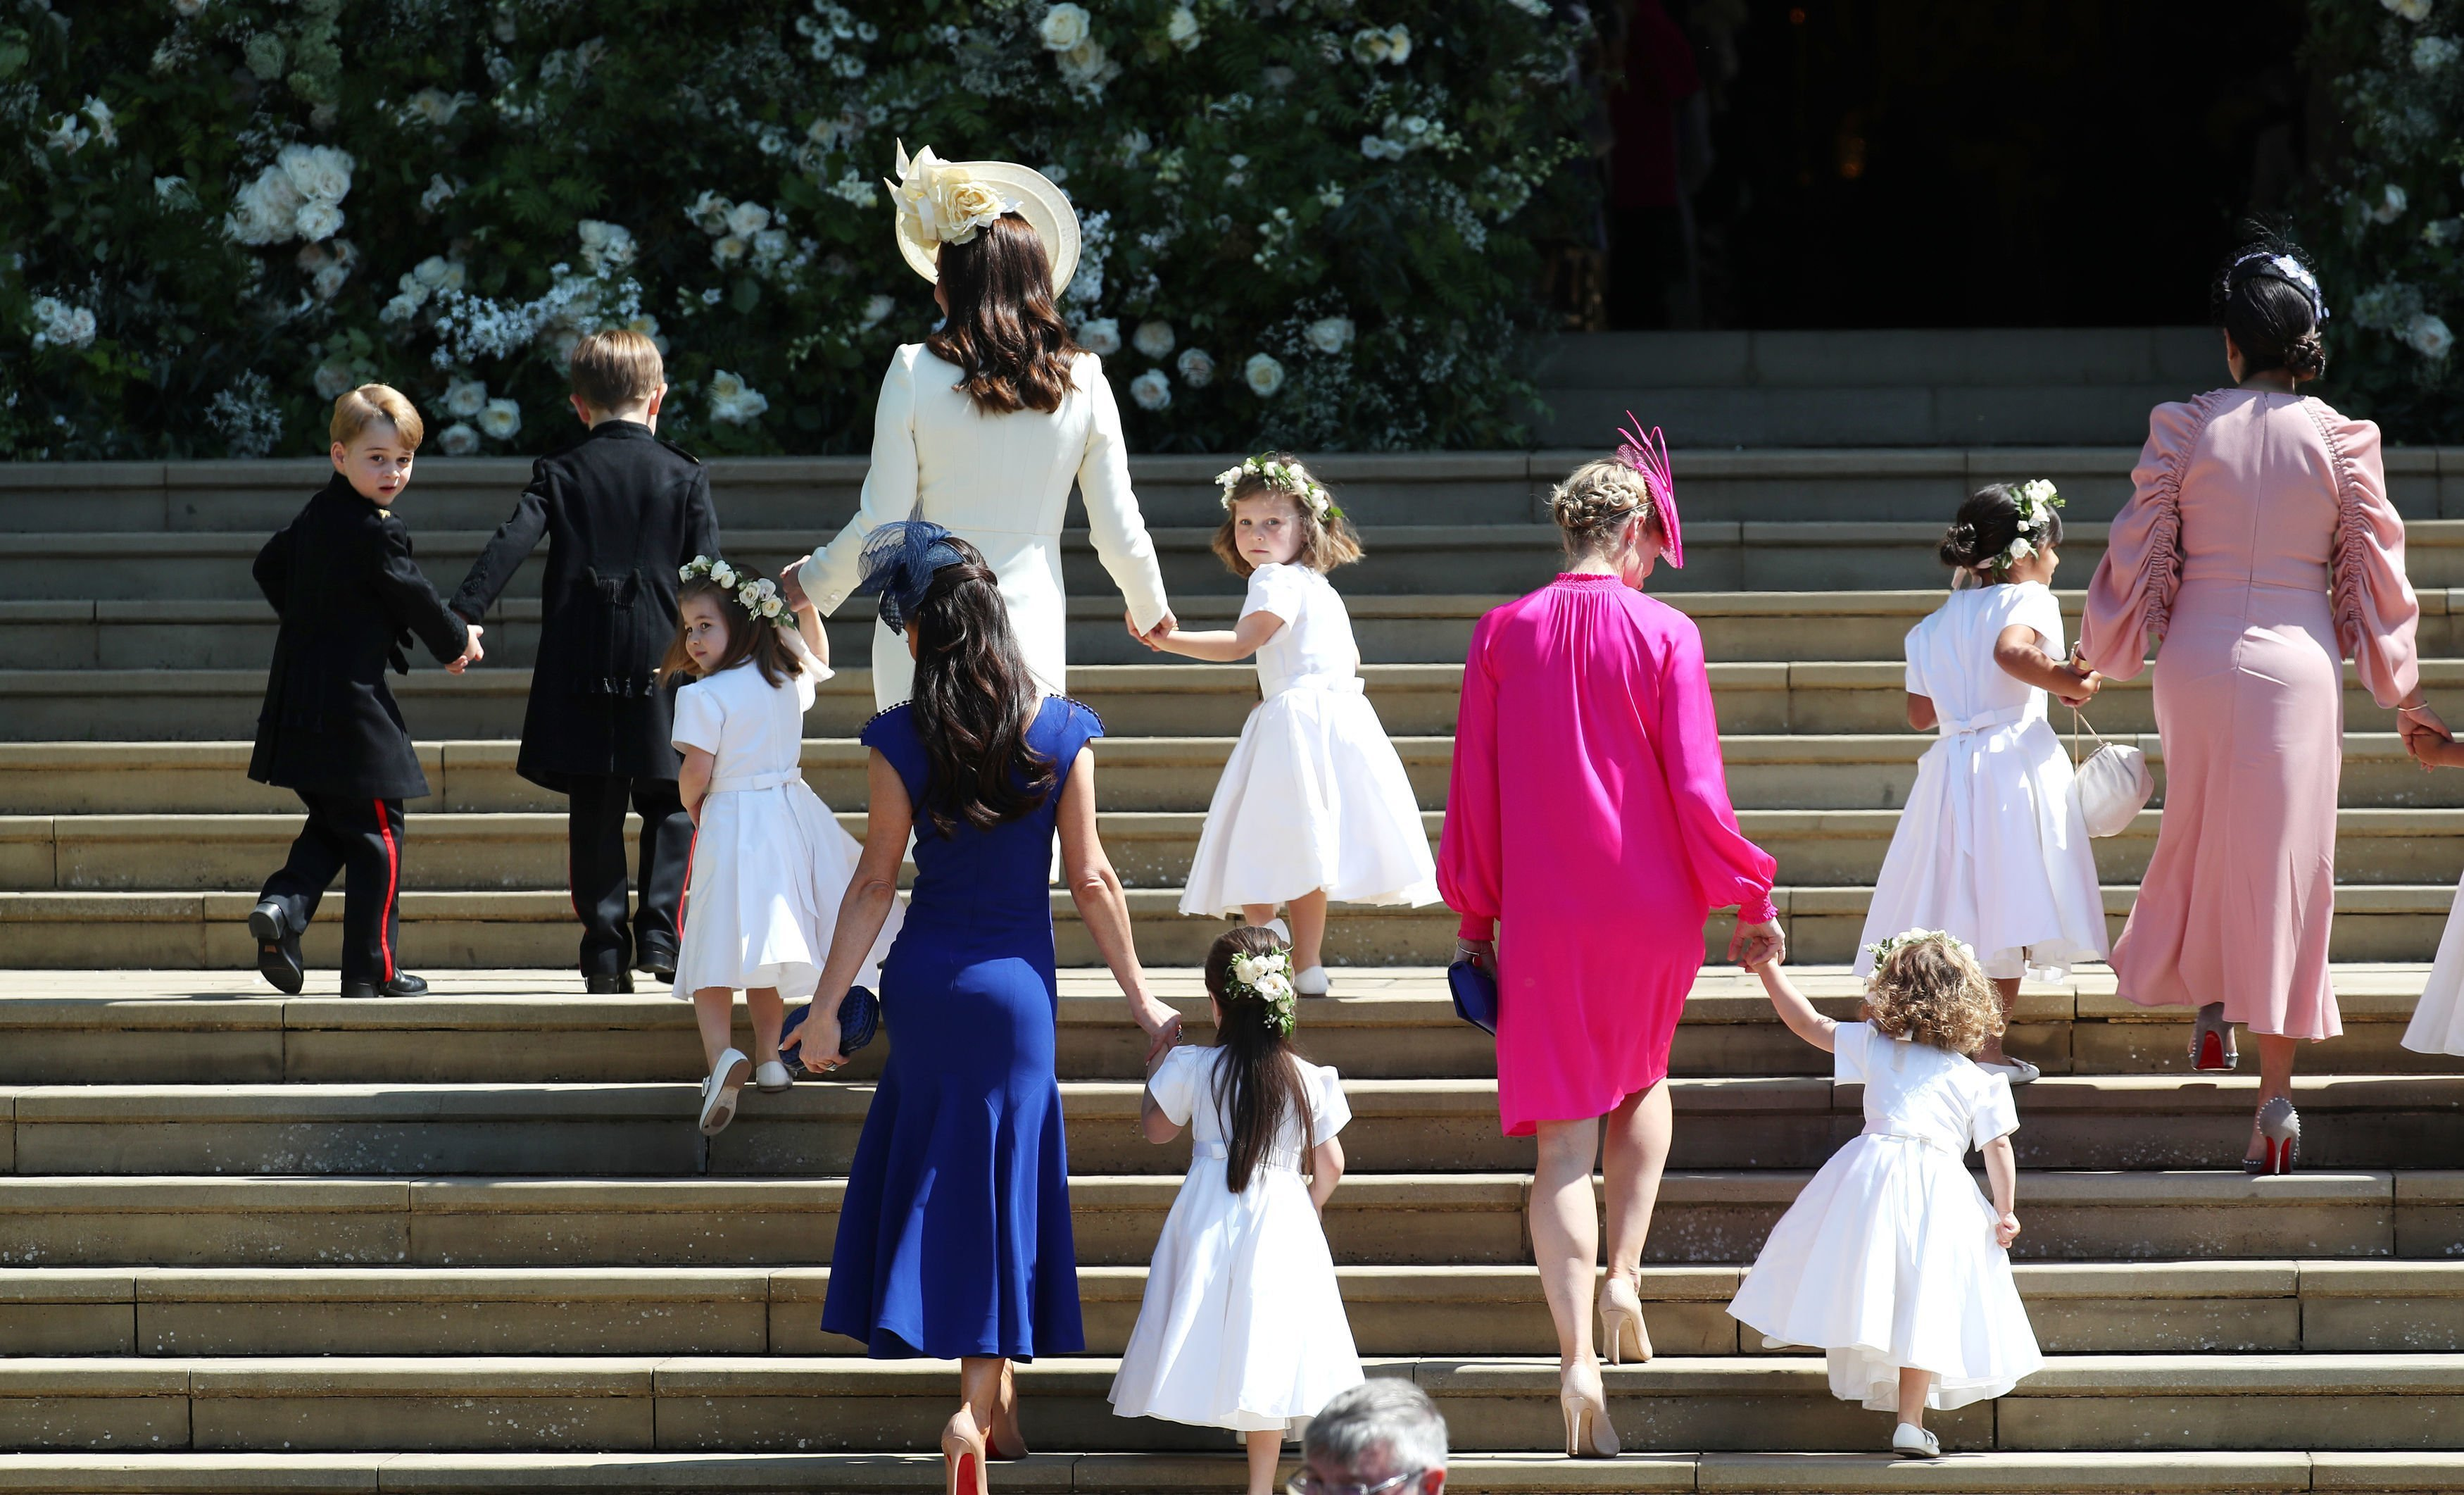 Catherine, Duchess of Cambridge, Jessica Mulroney,  Zalie Warren, and the other bridesmaids and pages arrive at St George's Chapel at Windsor Castle for the wedding of Prince Harry and Meghan Markle | Photo: GettyImages